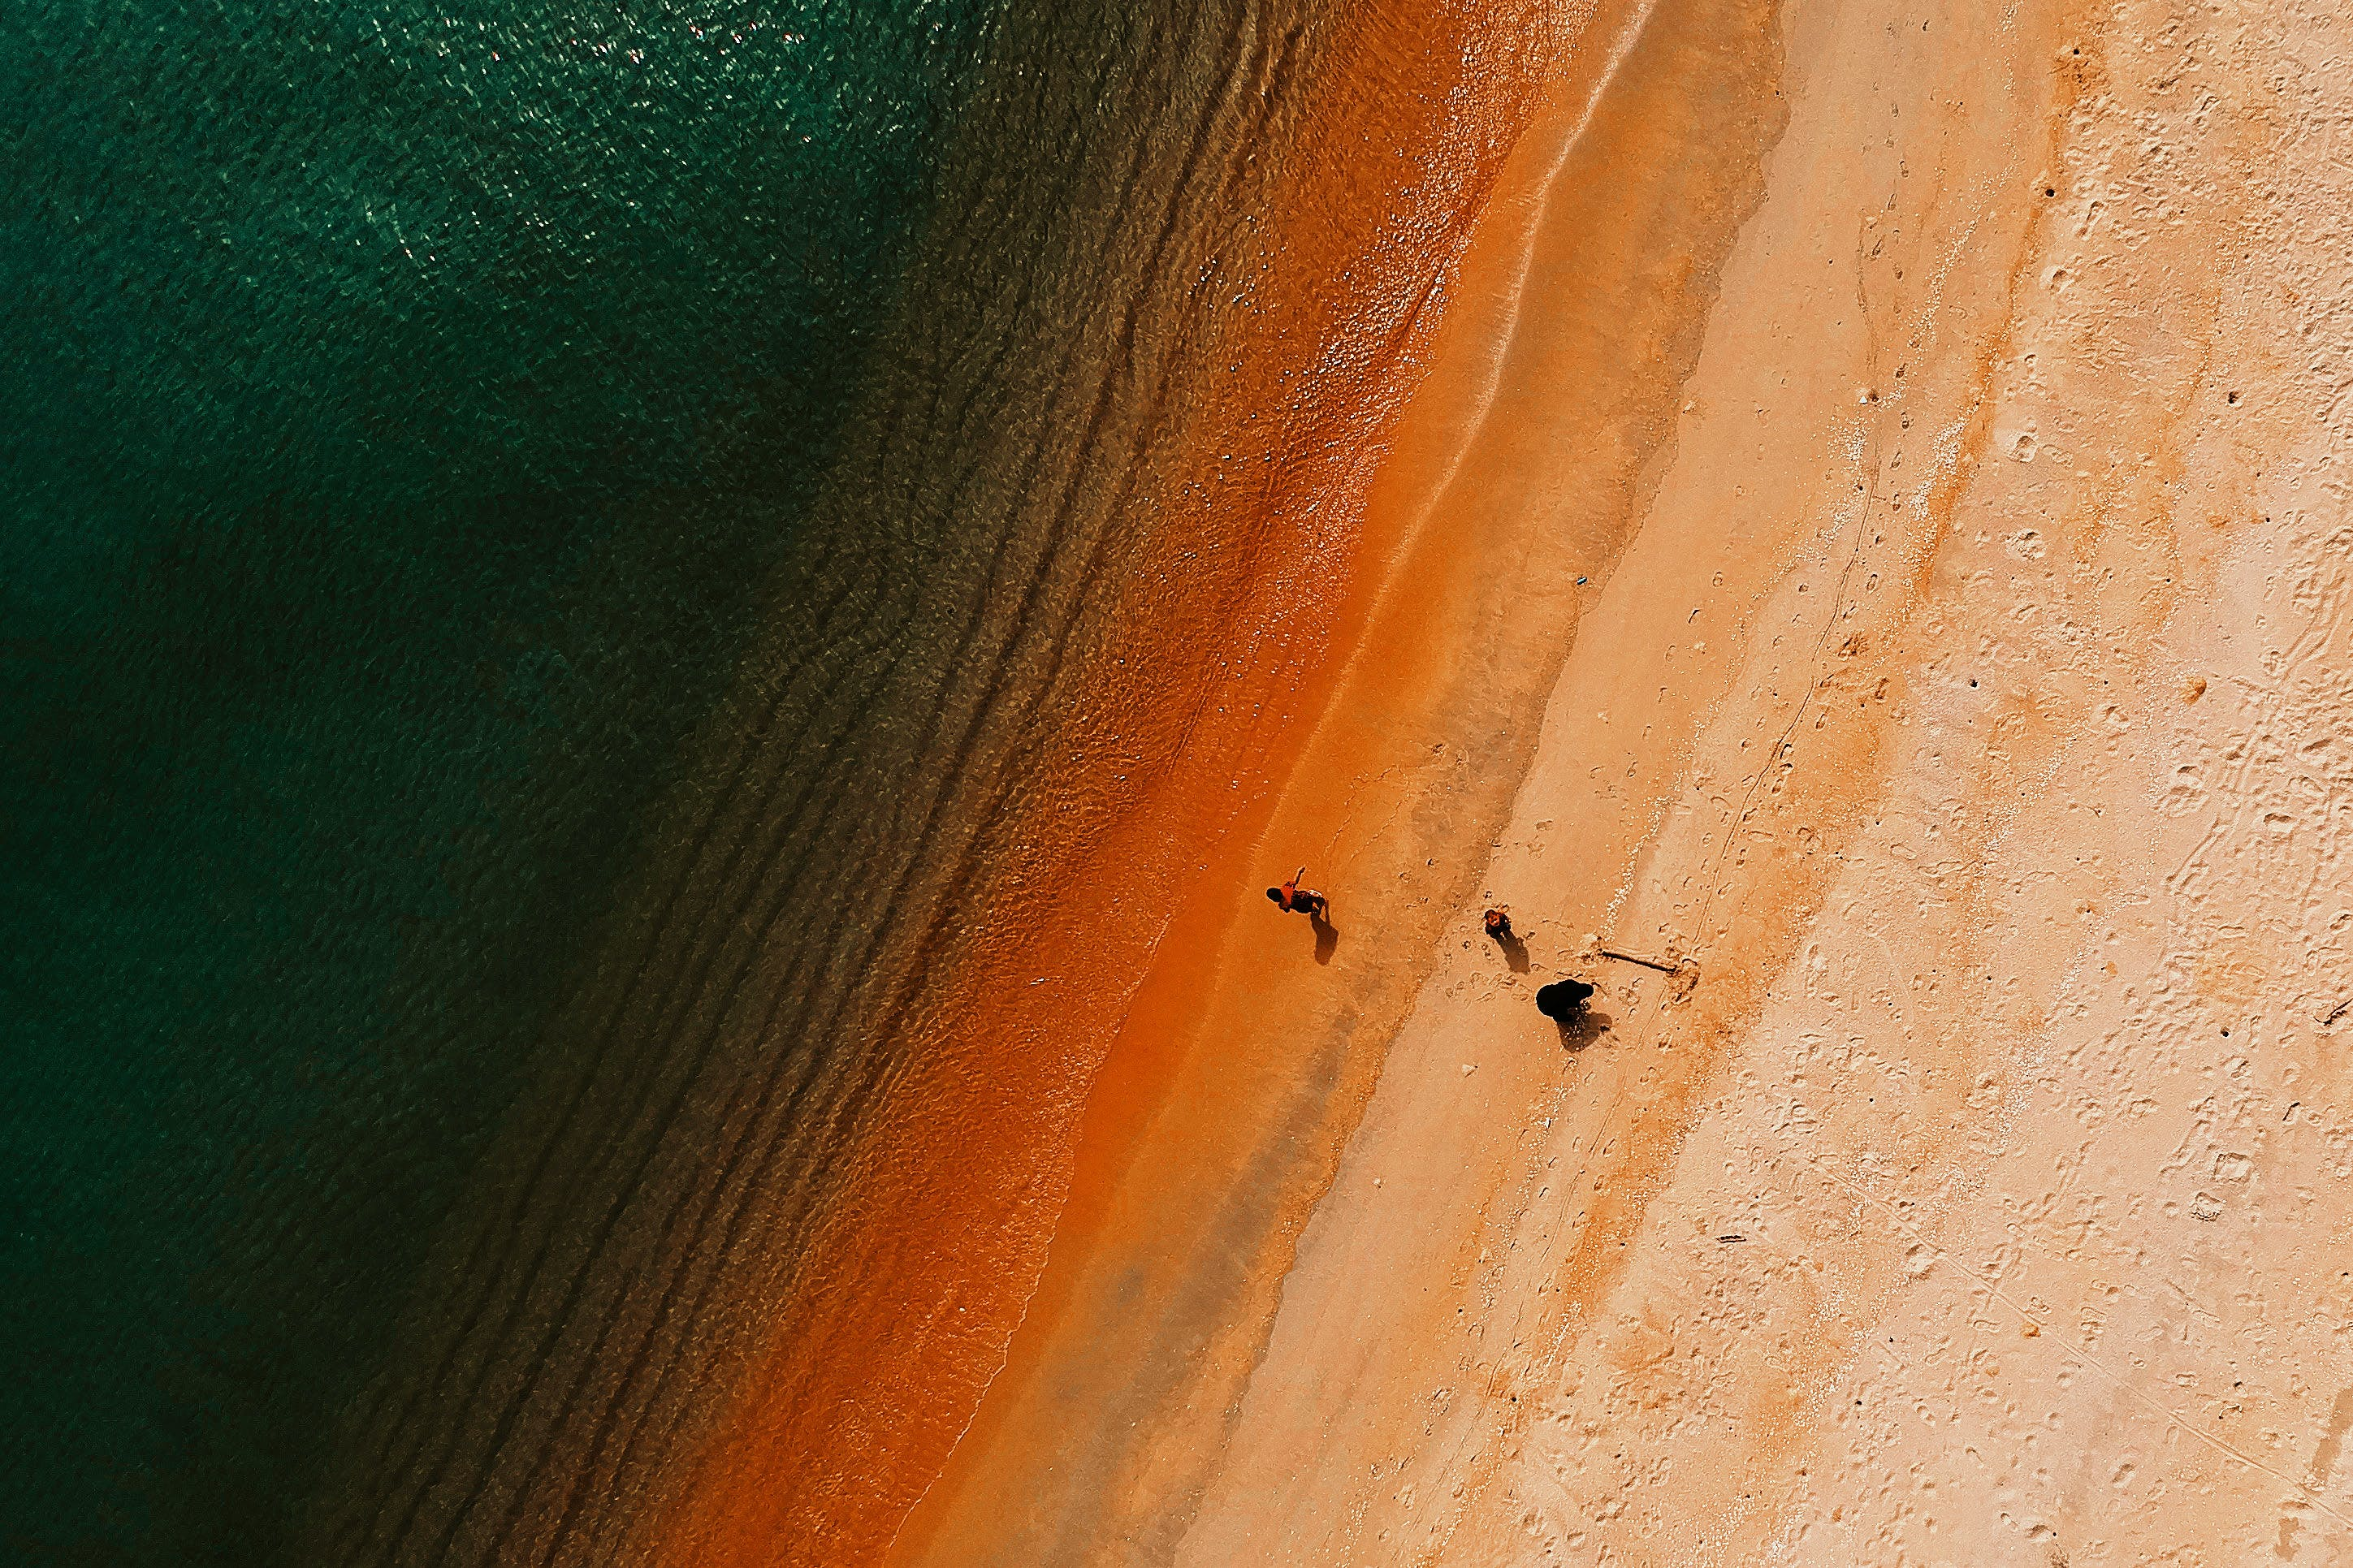 Aerial Photography of Group of People Near Body of Water